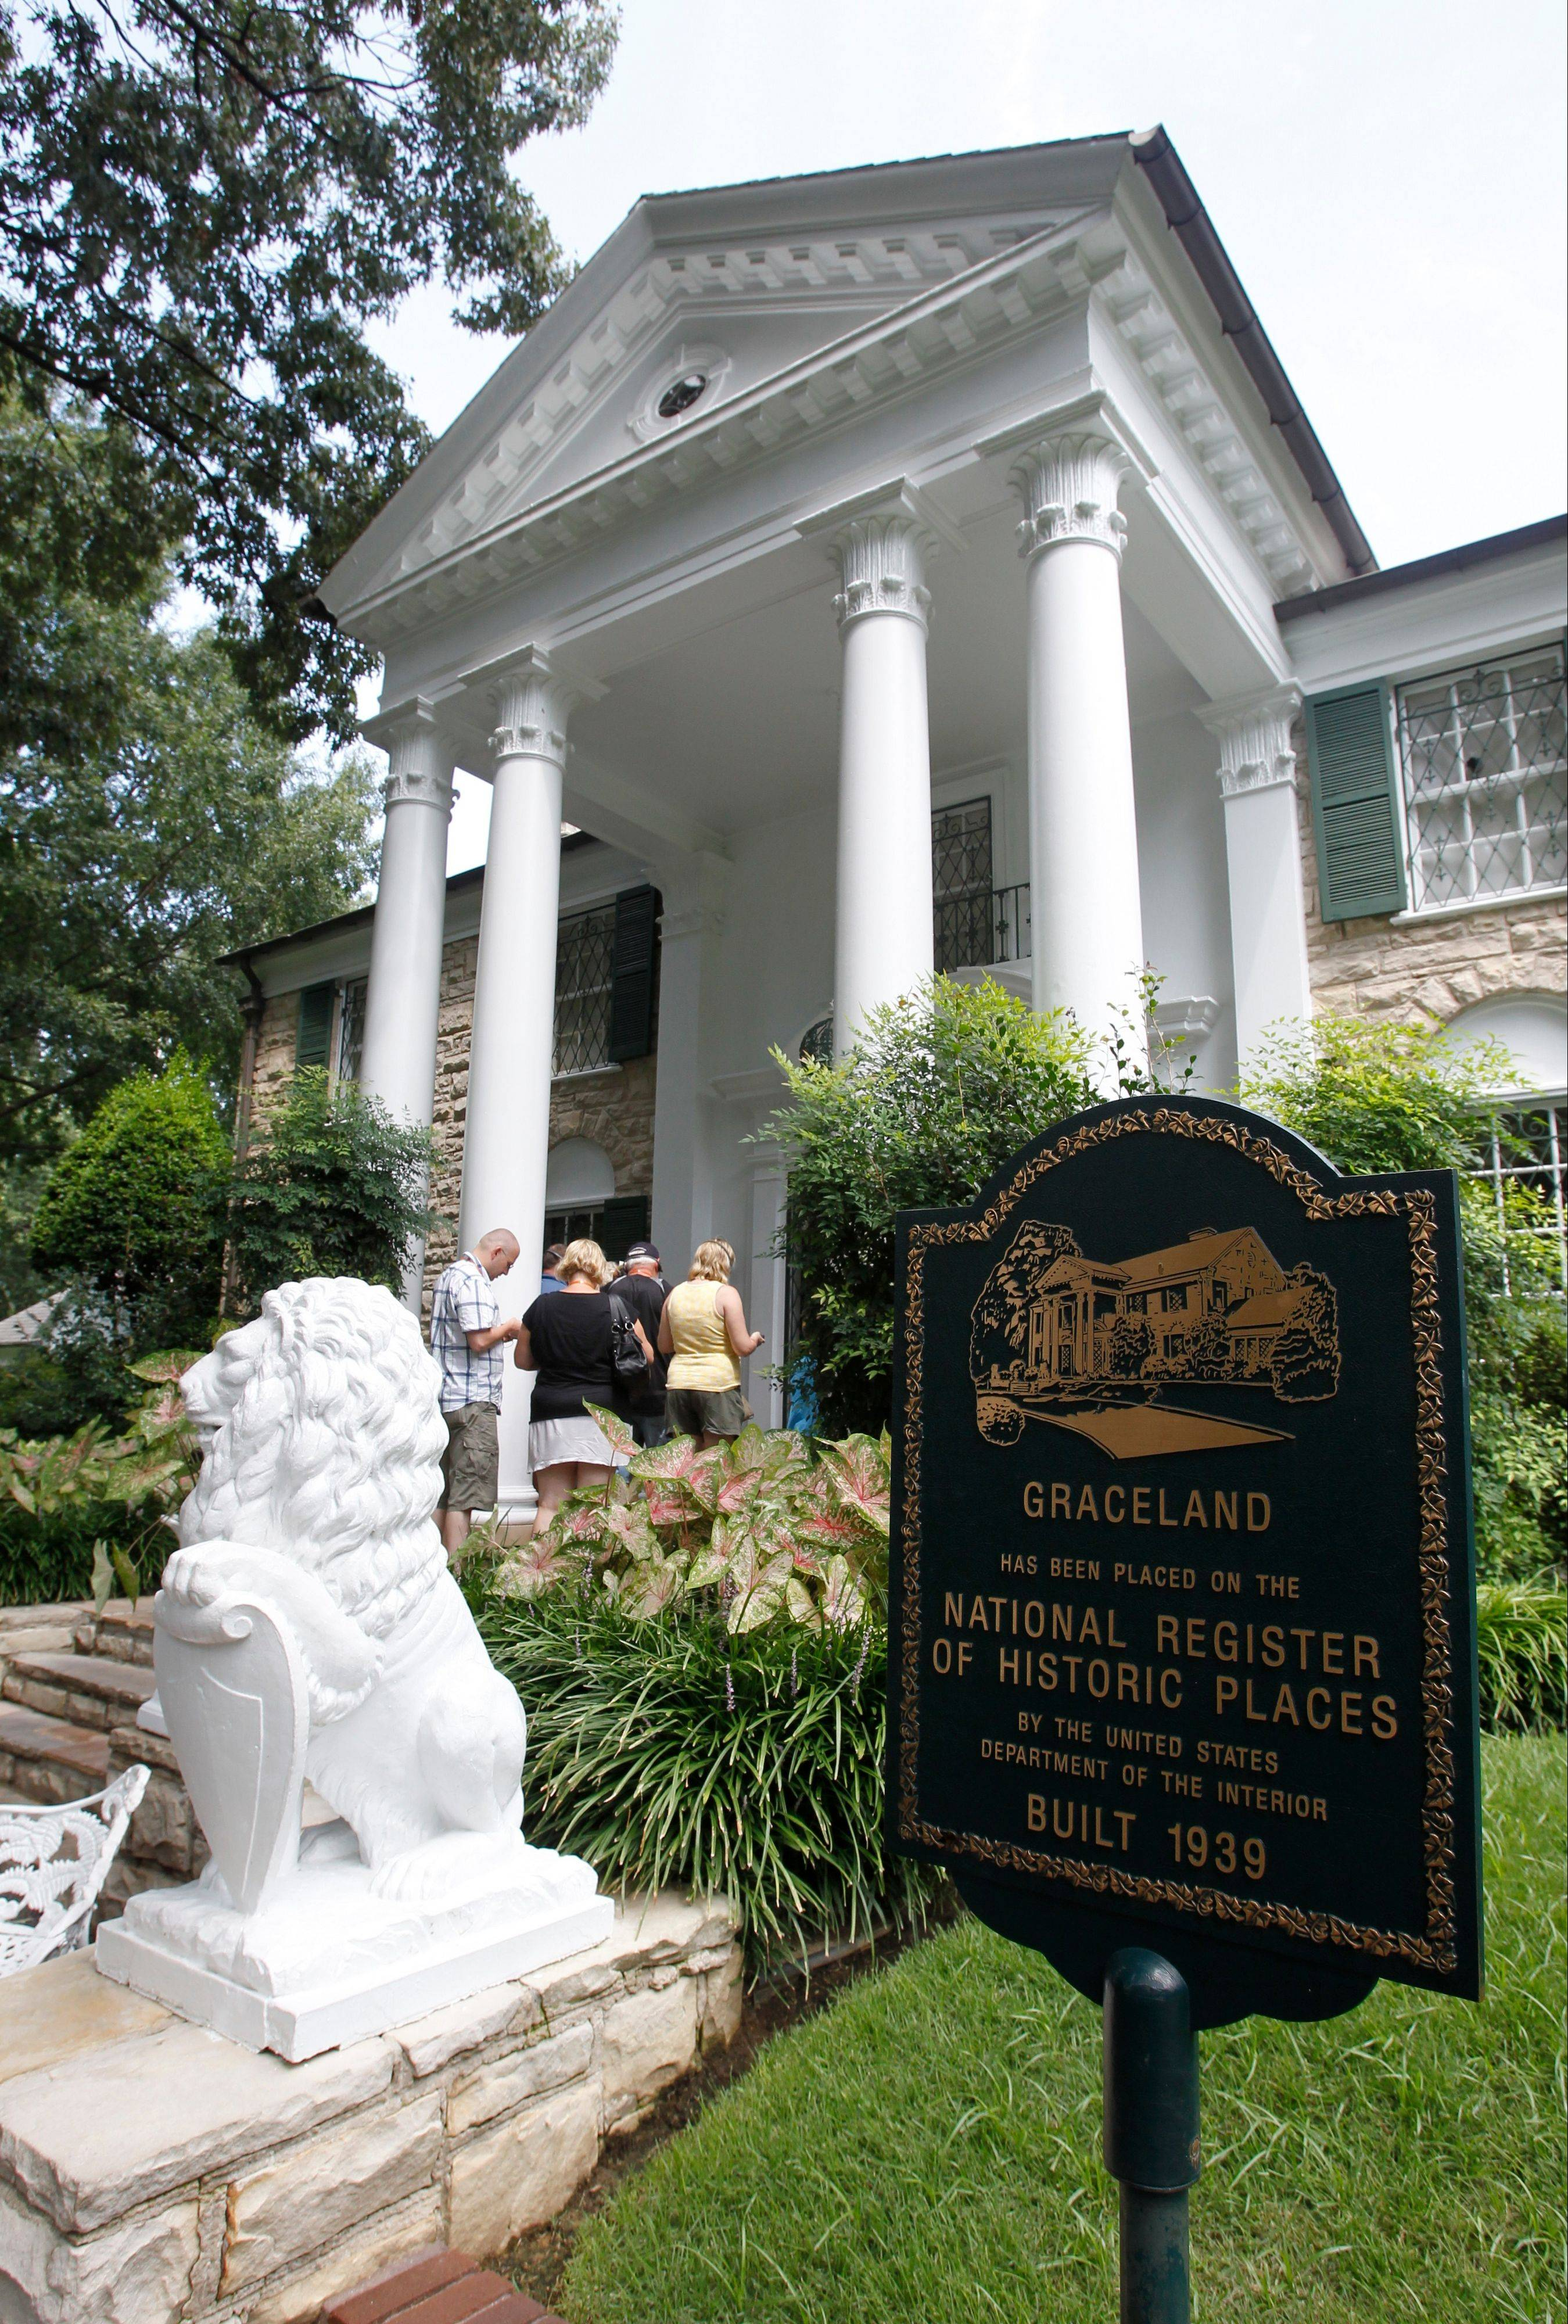 Graceland opened for tours on June 7, 1982. They sold out all 3,024 tickets on the first day and didn't look back, forever changing the Memphis tourist landscape while keeping Elvis and his legend alive.